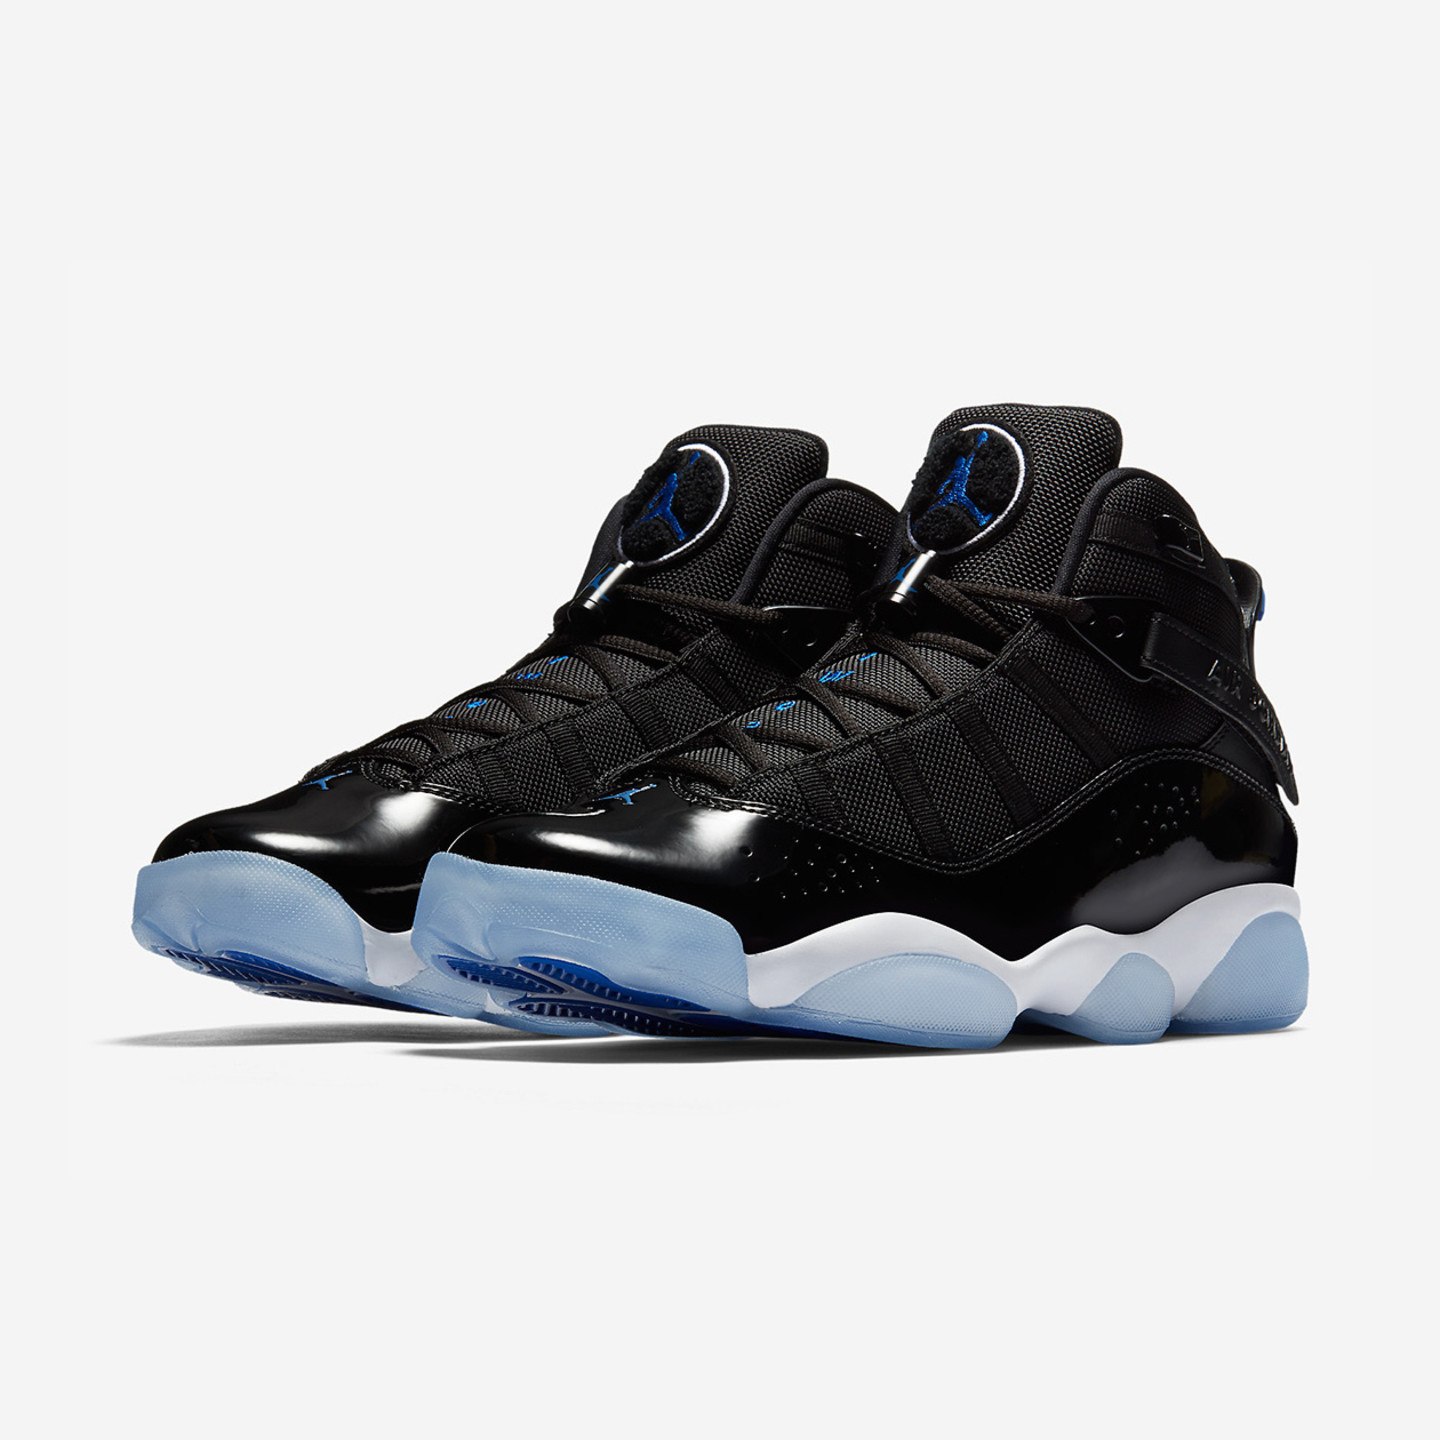 Jordan Air Jordan 6 Rings 'Space Jam' Black / Hyper Royal / White  322992-016